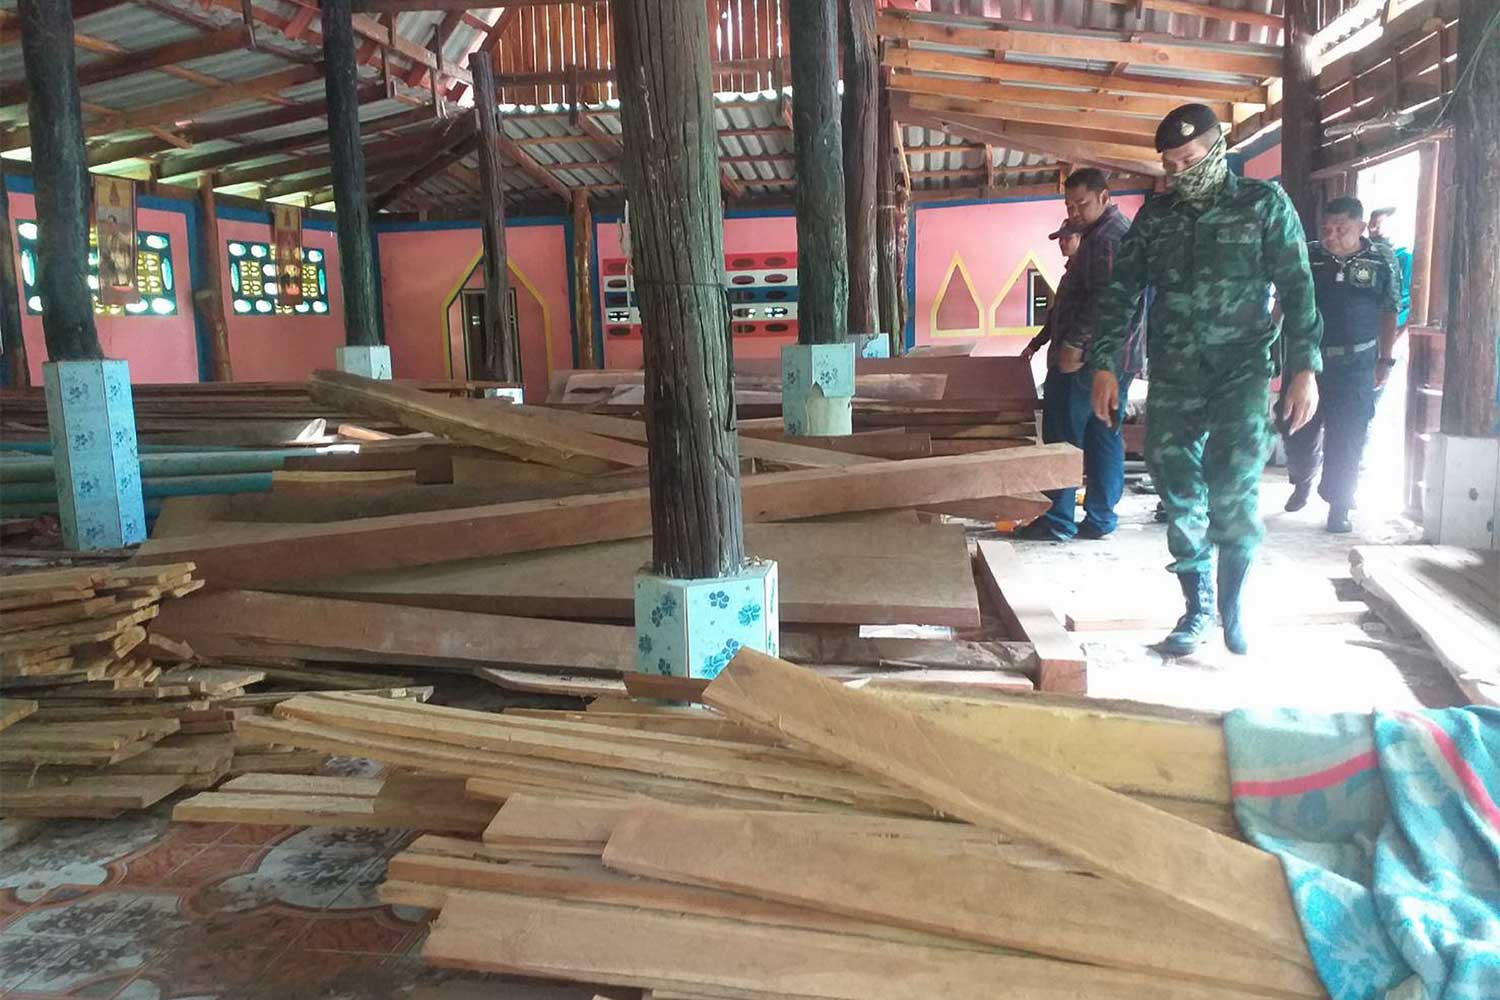 Many illegally processed wood planks are found in the compound of Wat Nong Phla Sew in Sai Yok district, Kanchanaburi during a search on Thursday. (Photo: The Royal Forestry Department)